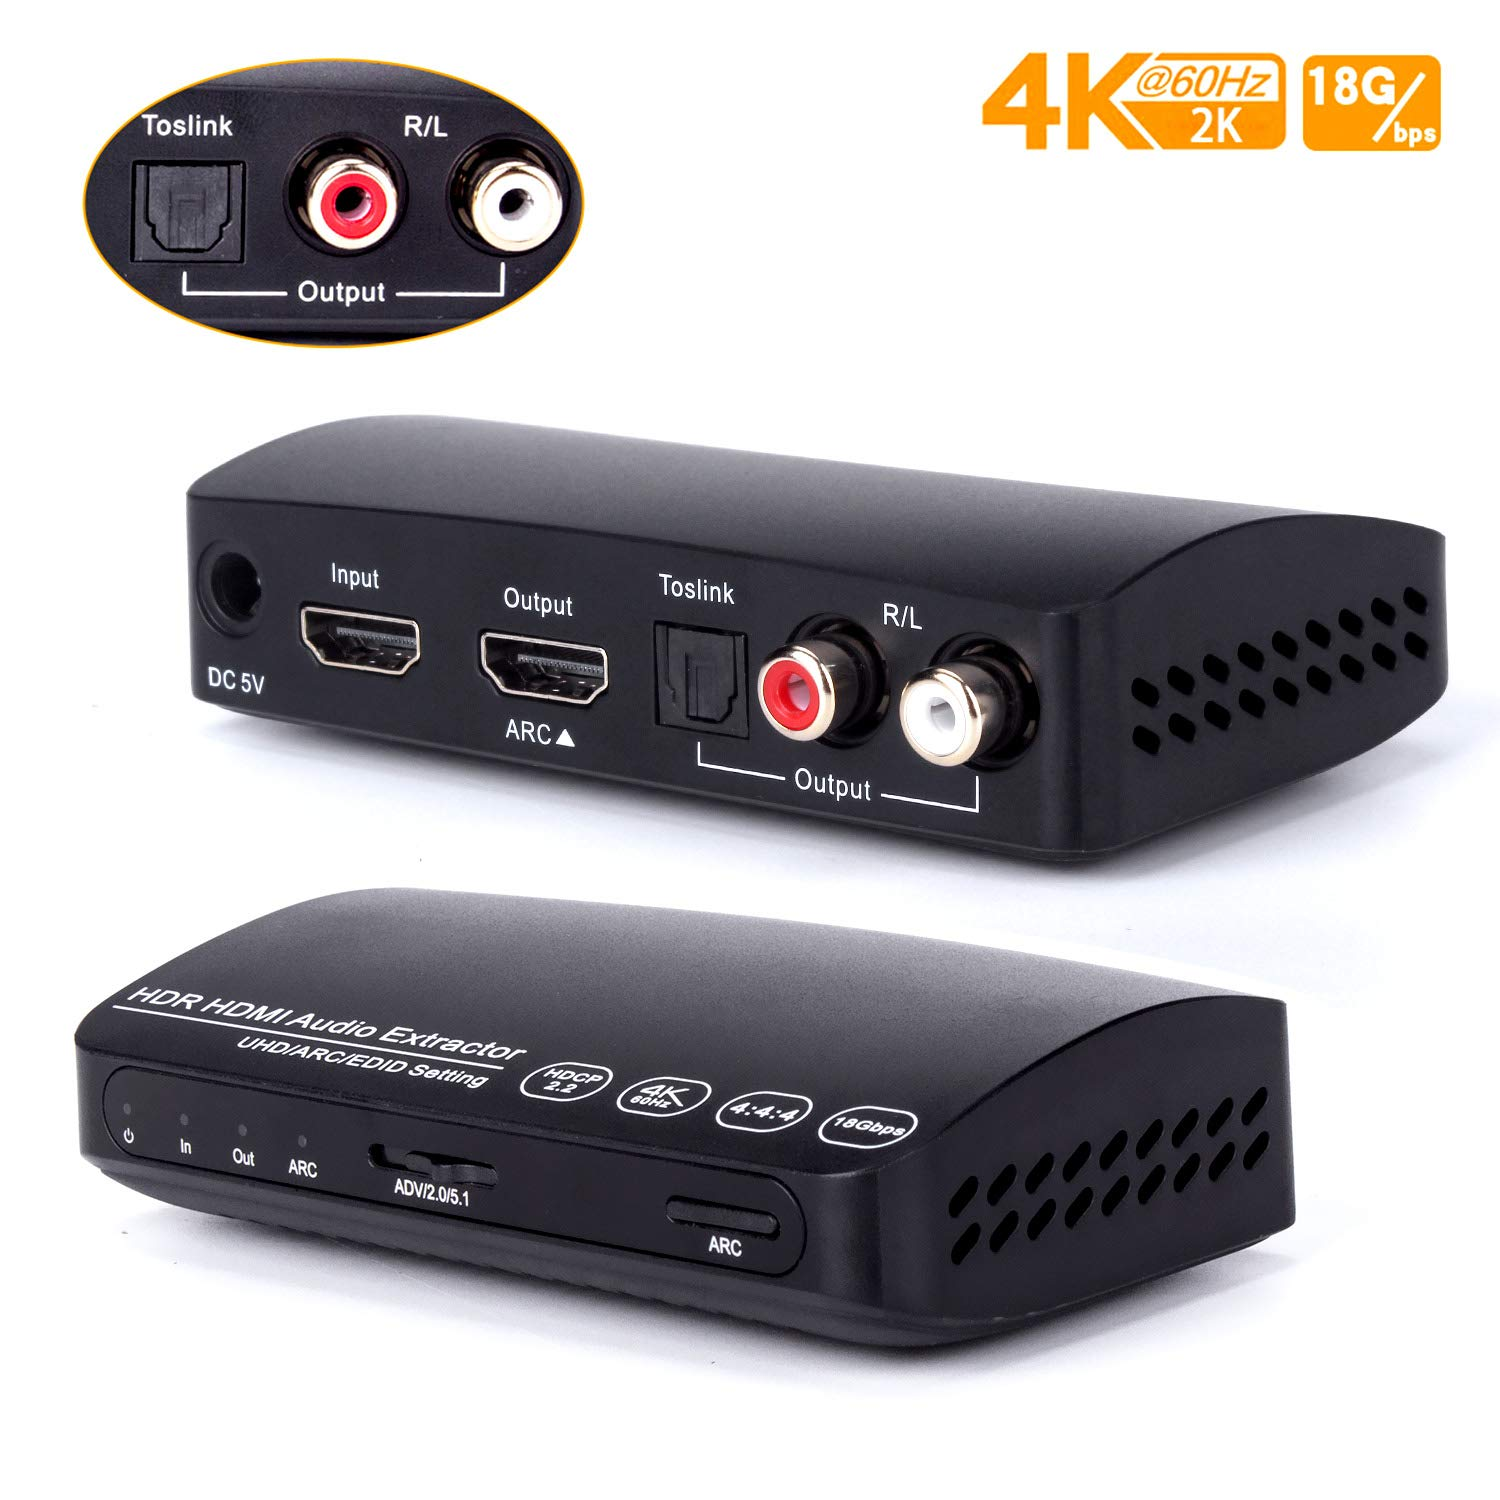 HDR 18G//BPS with IR Remote Control HDCP 2.2 3D Ansten HDMI 2.0 Switcher 3x1 for PS4//PS3//PRO//Xbox//360//DVD Game Home Projector Use HDMI Switch 3 in 1 ouput Support 4K@60HZ HDMI 2.0